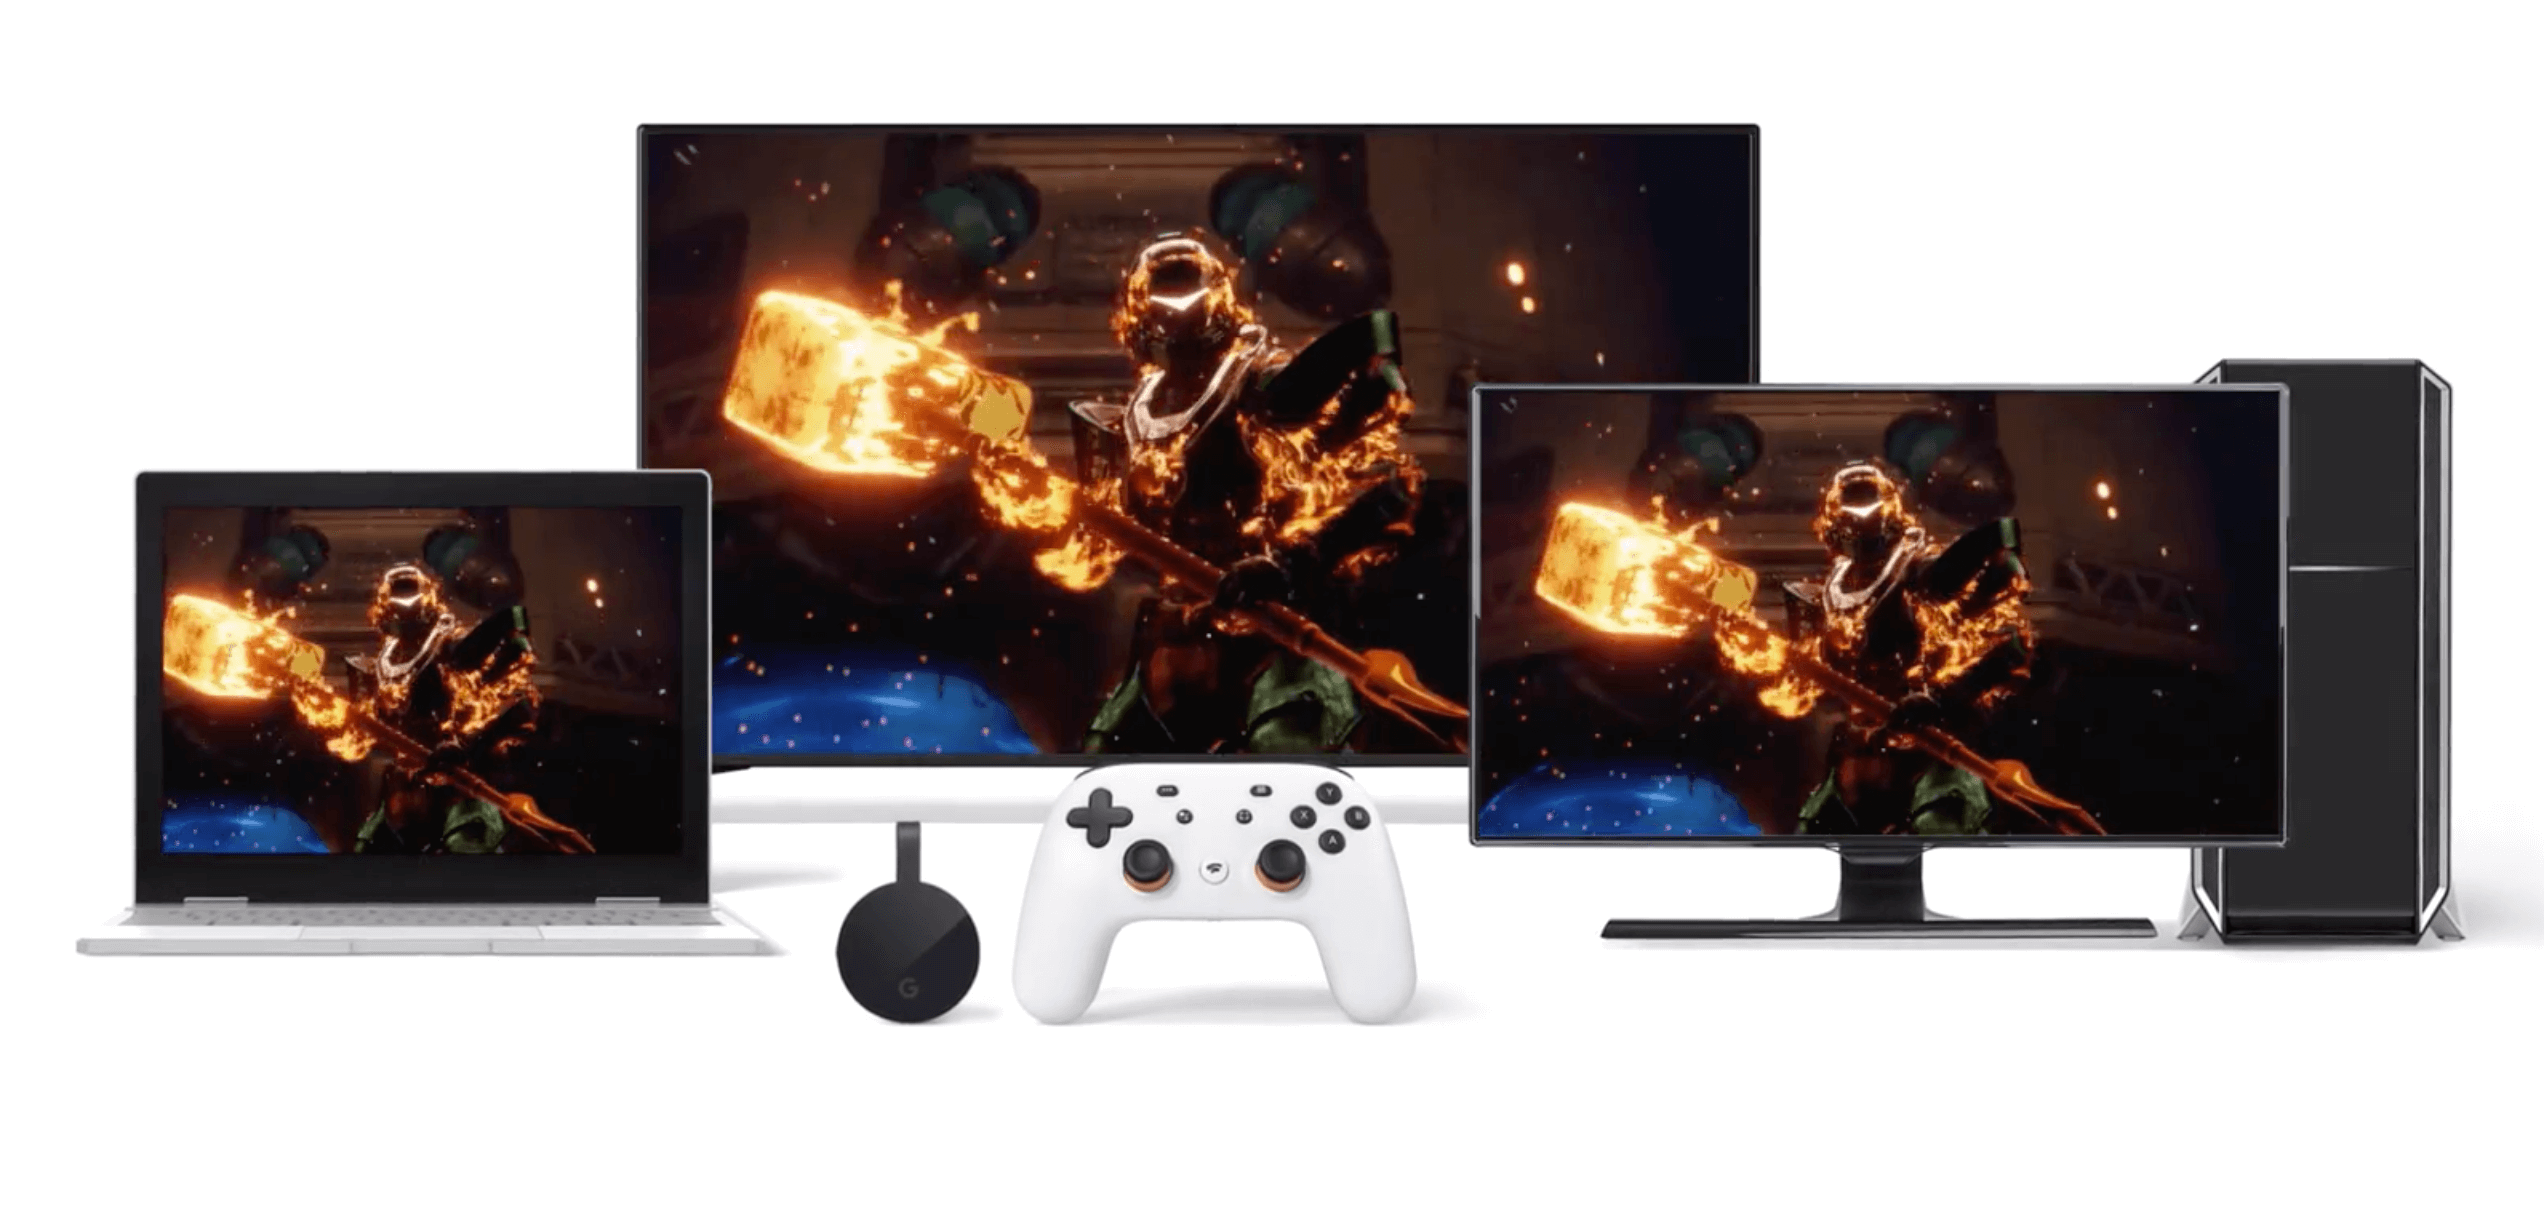 Google Tests Stadia Over 4G and 5G Connections